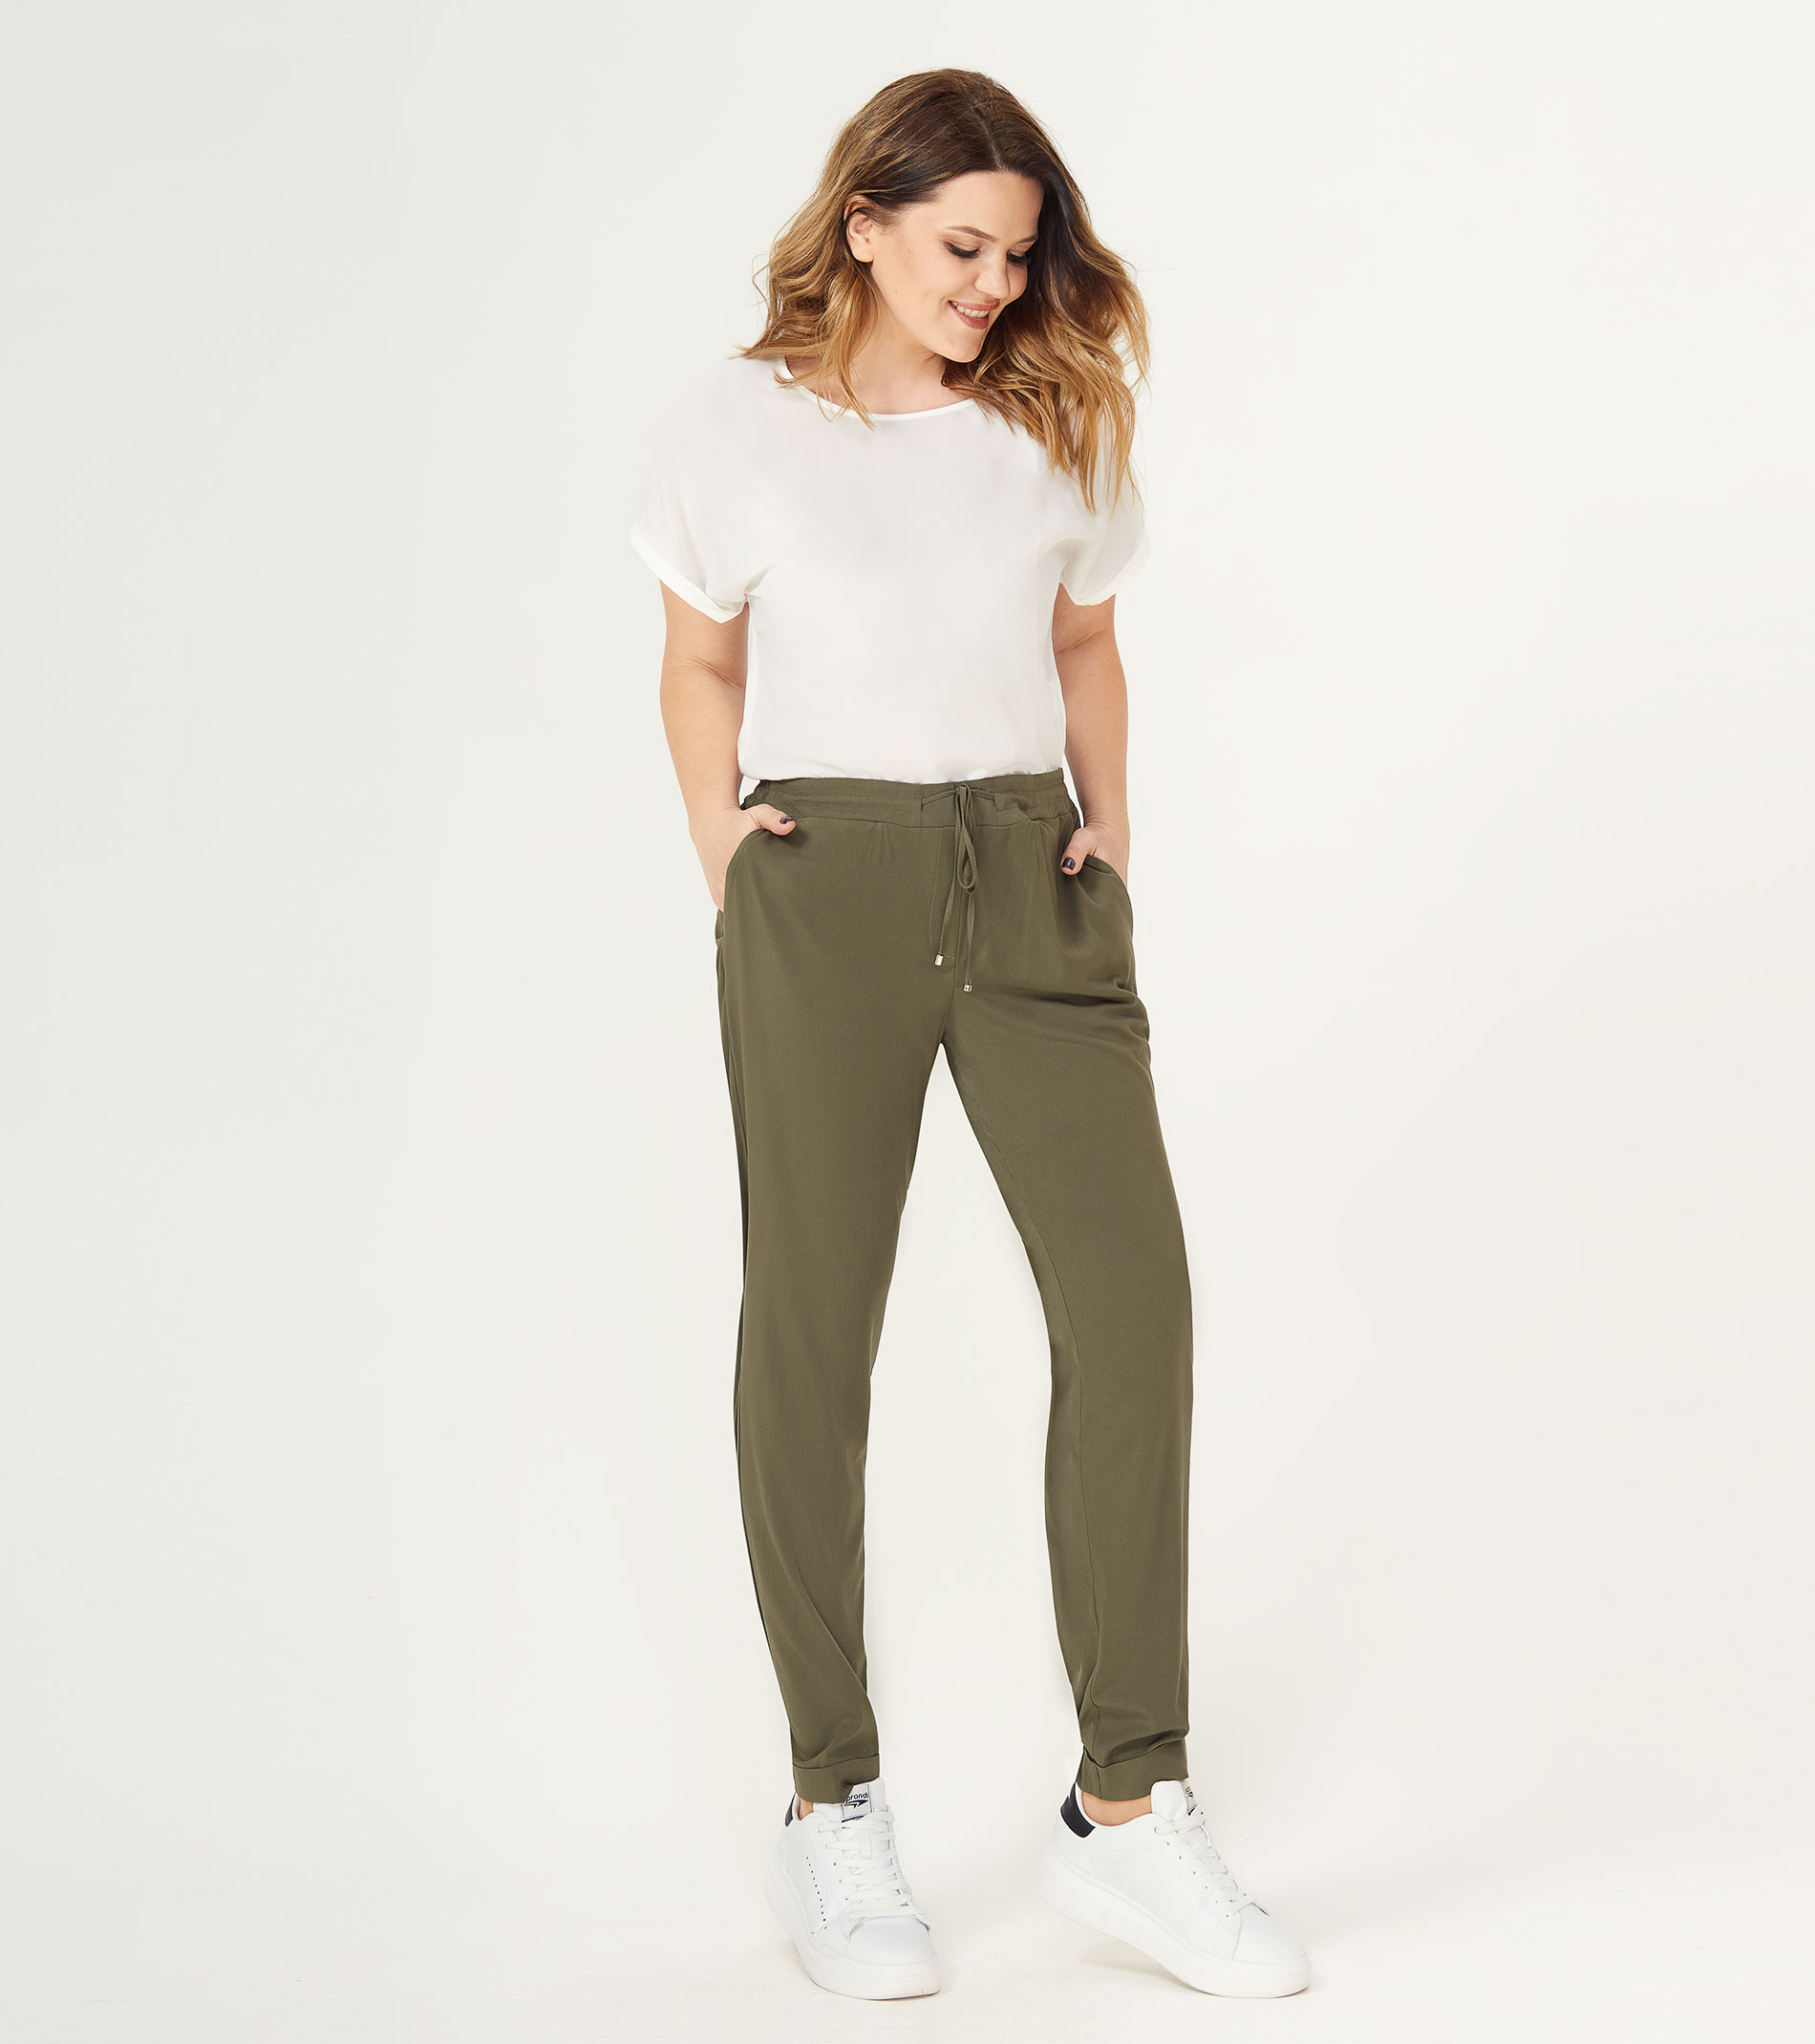 Women's trousers 433560